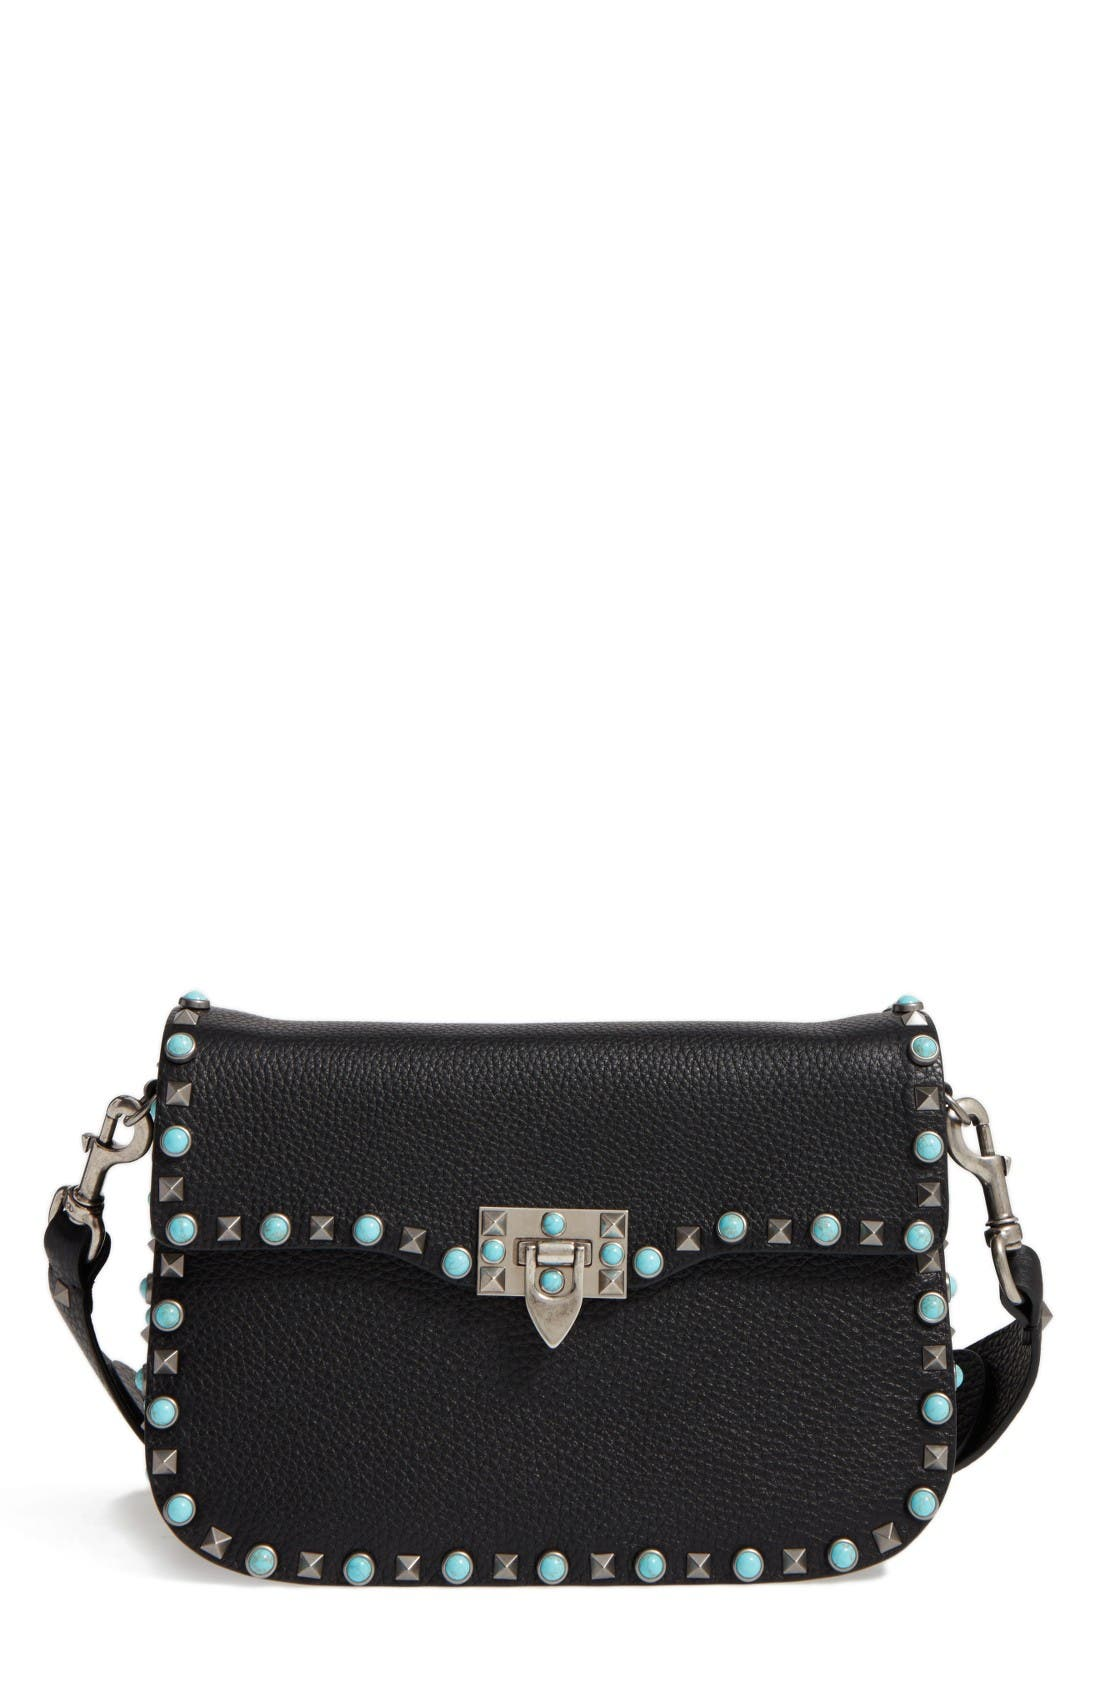 Main Image - VALENTINO GARAVANI Rolling Rockstud Guitar Strap Leather Shoulder Bag